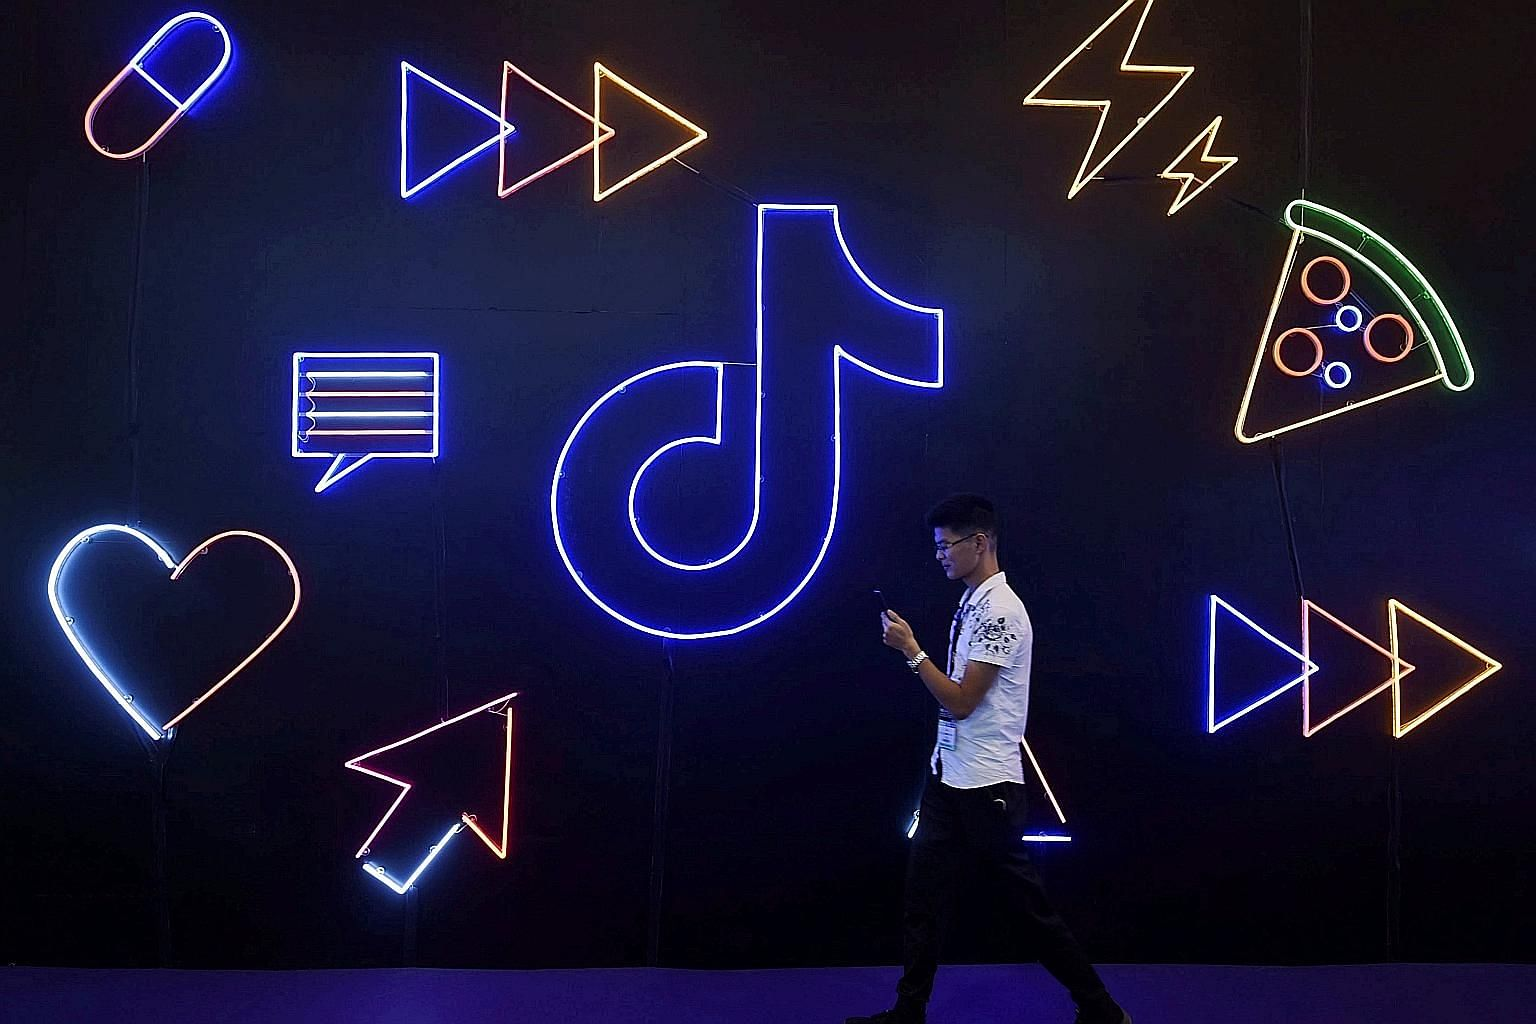 Mobile app TikTok's logo on display at an expo in Hangzhou, China, in October. TikTok's blunder in temporarily taking down a video of 17-year-old Feroza Aziz criticising China's inhumane treatment of Uighur Muslims inflamed suspicions about the inten